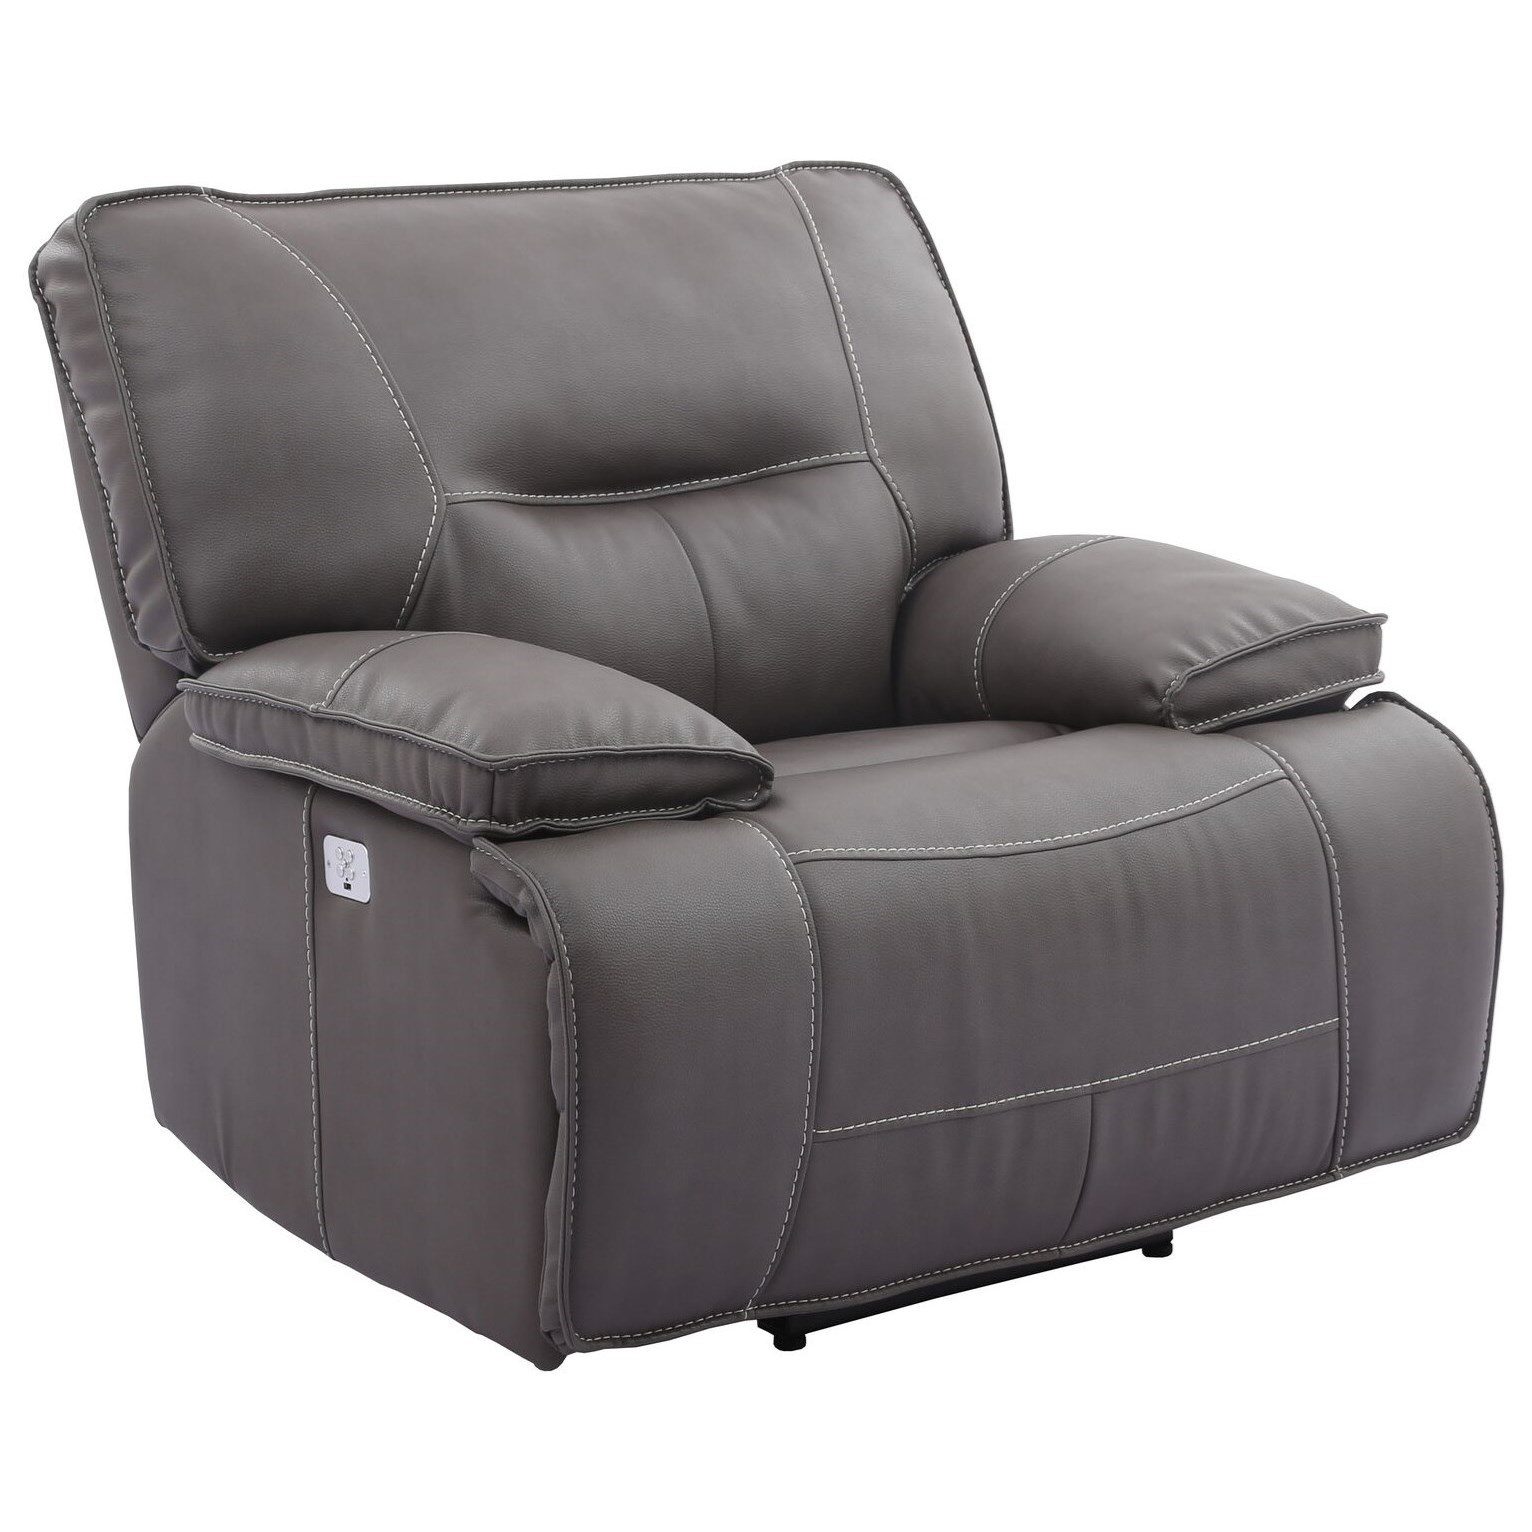 Spartacus Power Recliner with USB and Power Headrest by Parker Living at Steger's Furniture